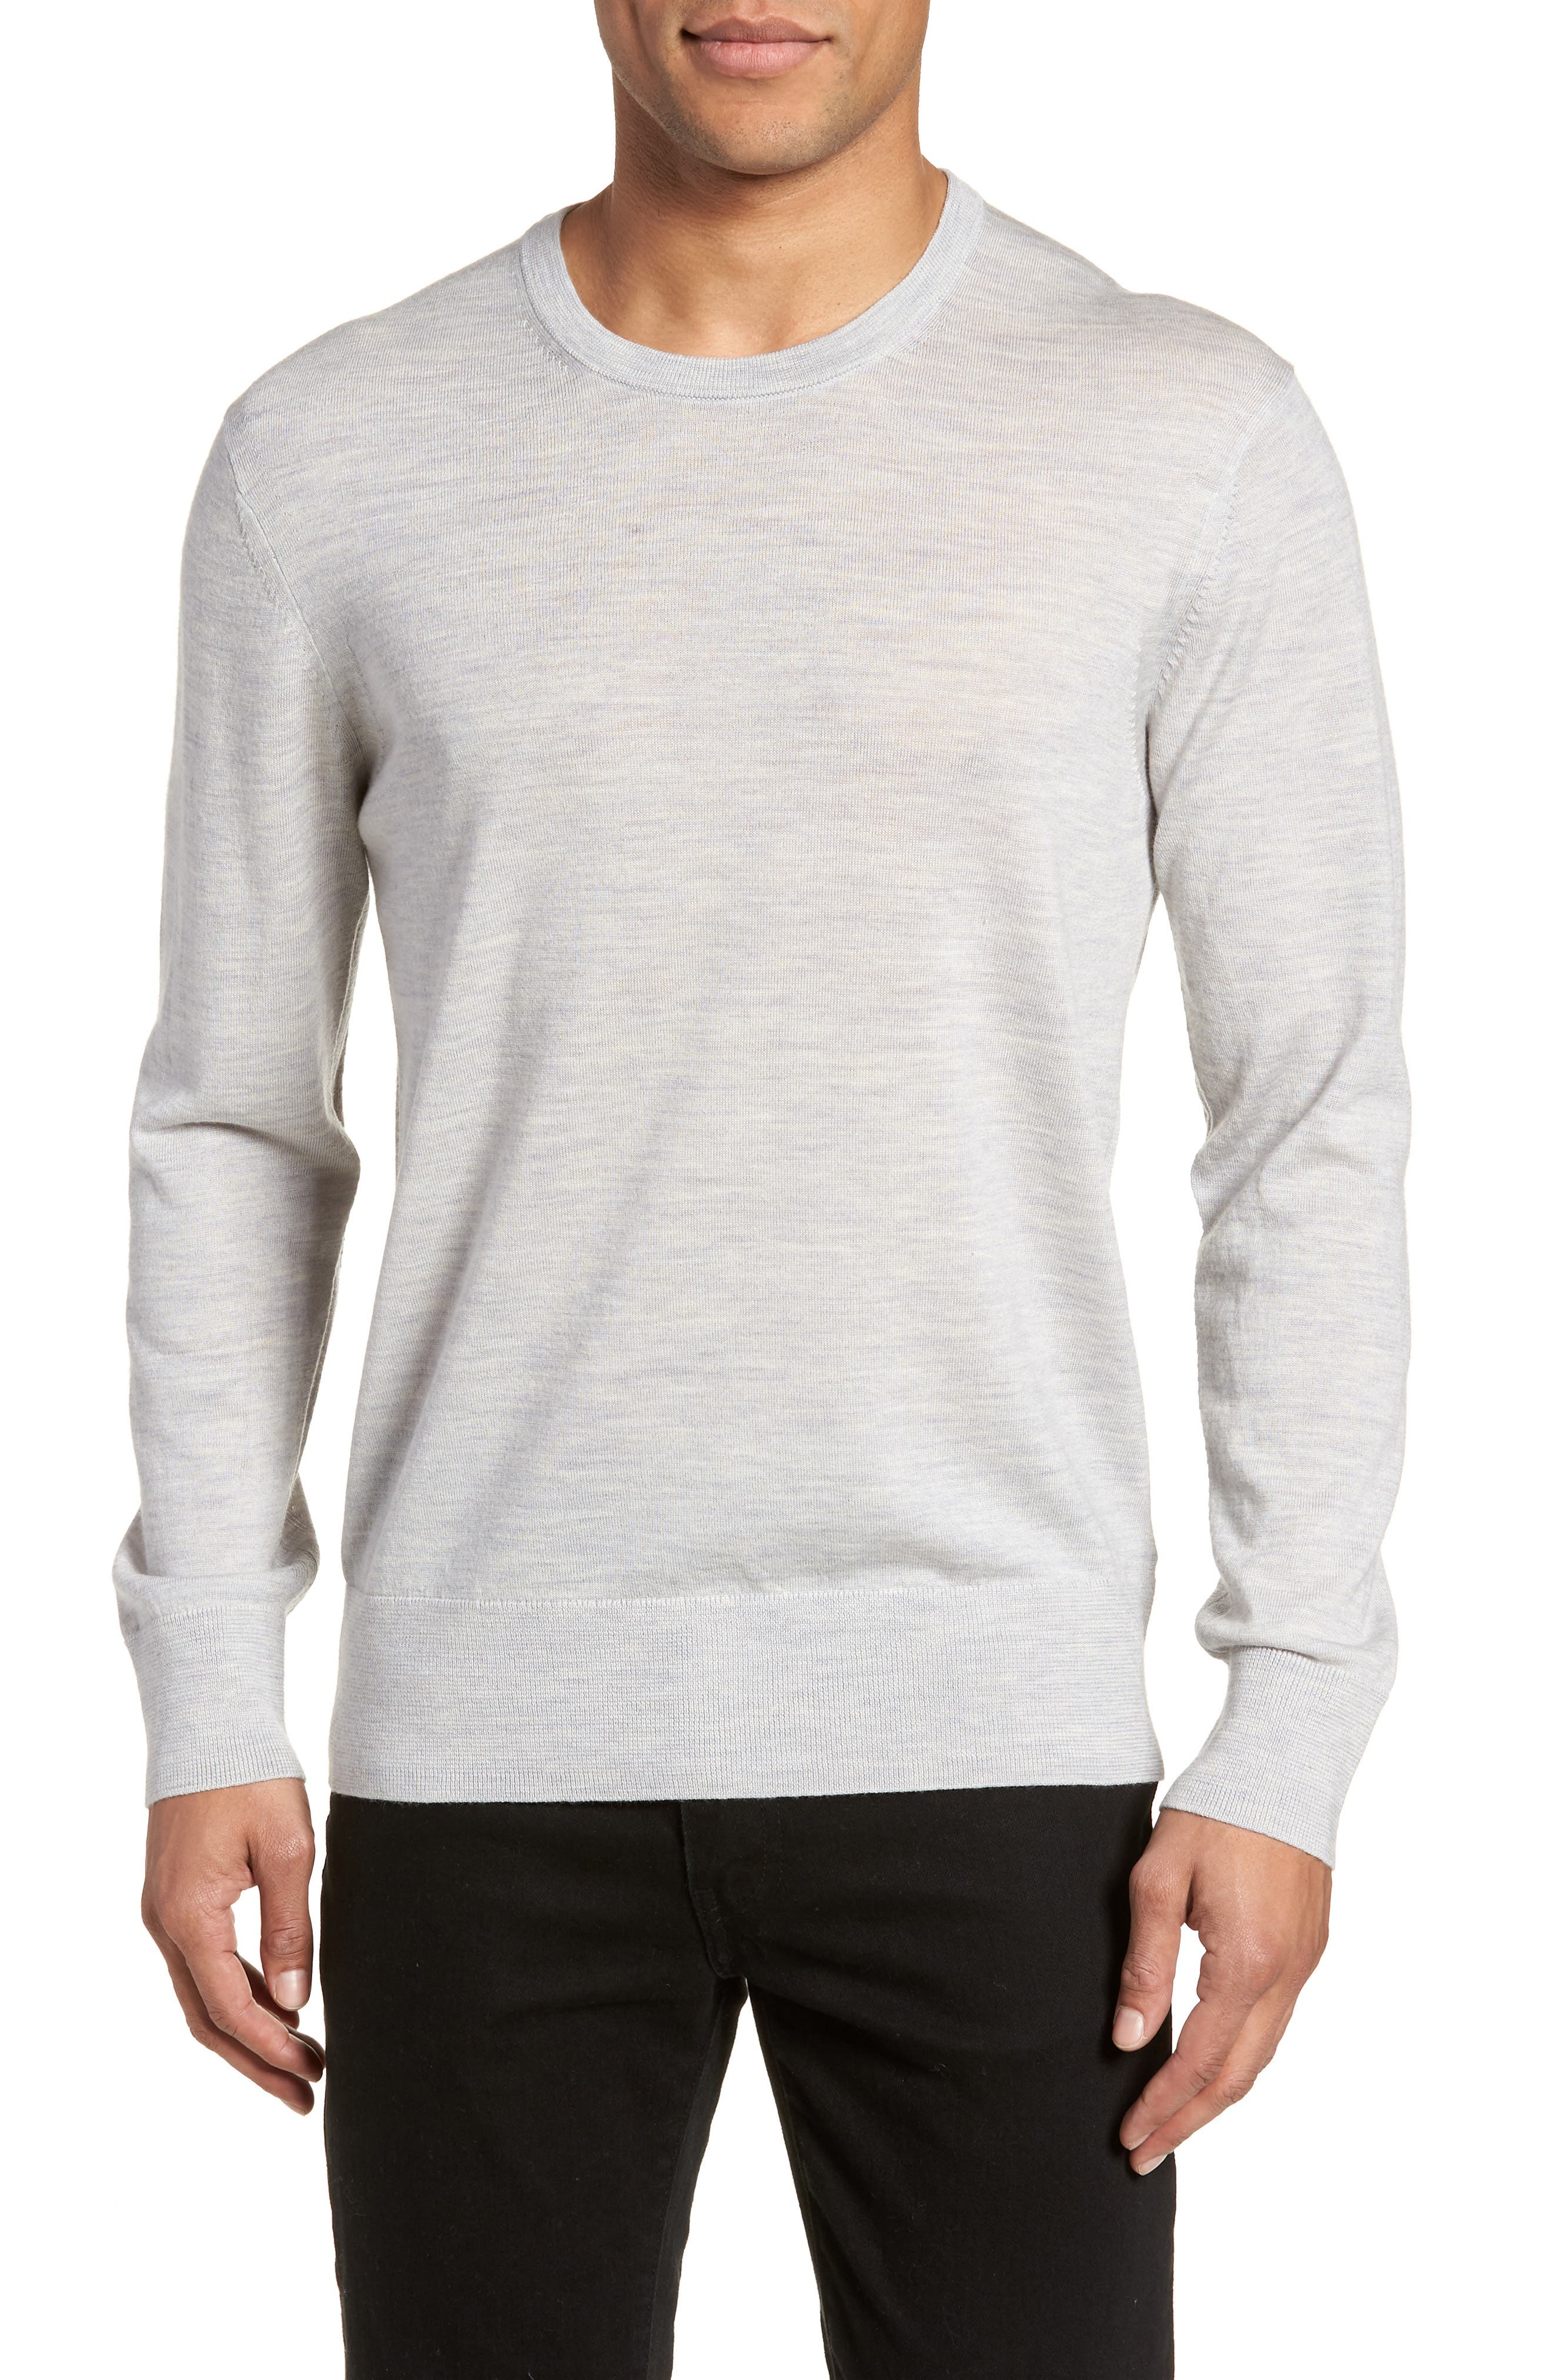 Lang Crewneck Wool Sweater,                             Main thumbnail 1, color,                             Light Grey Marl